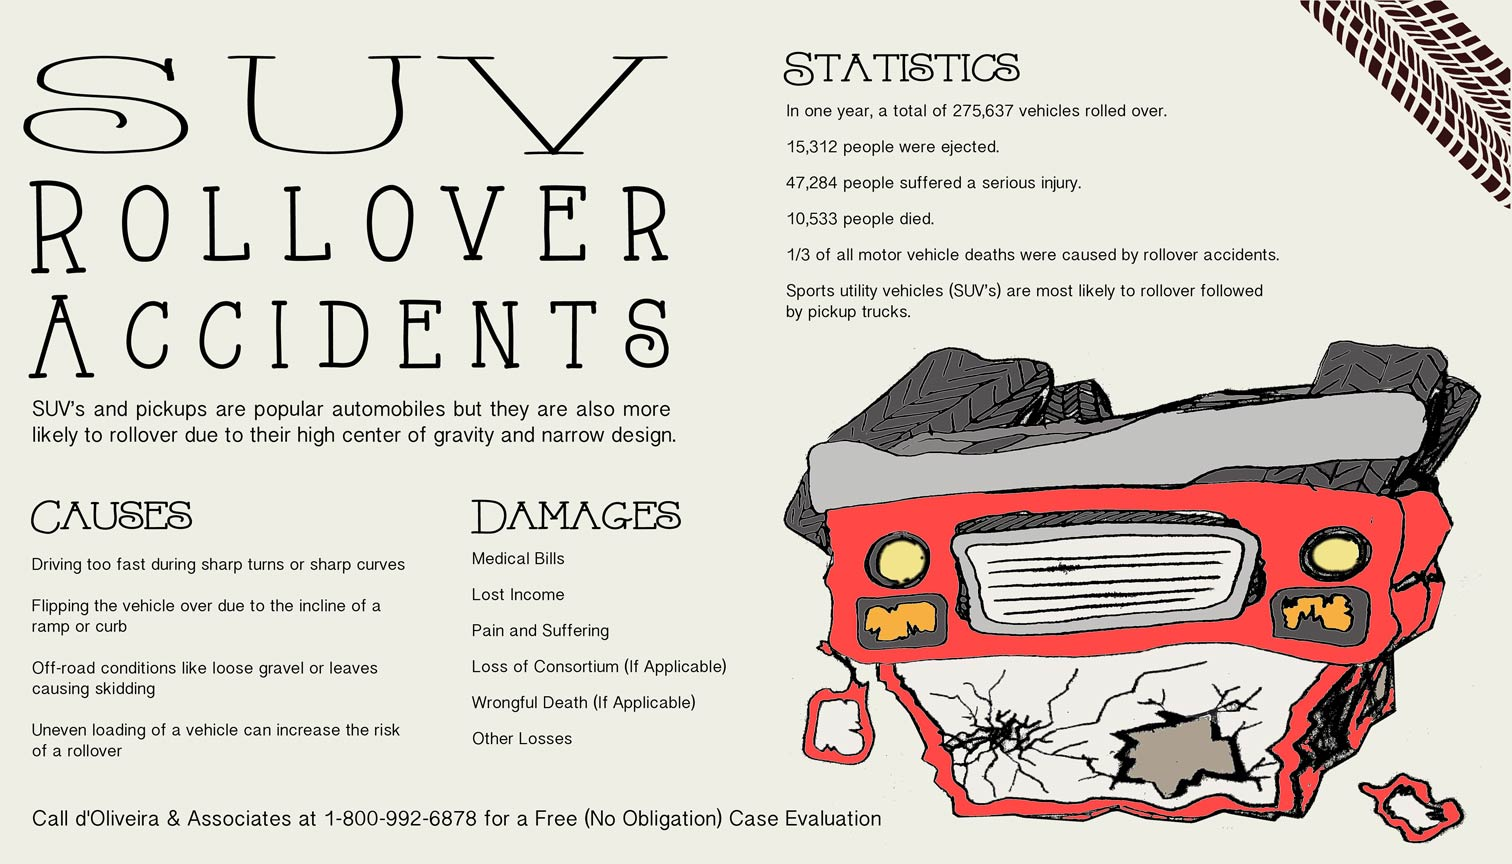 SUV Rollover Accidents Infographic